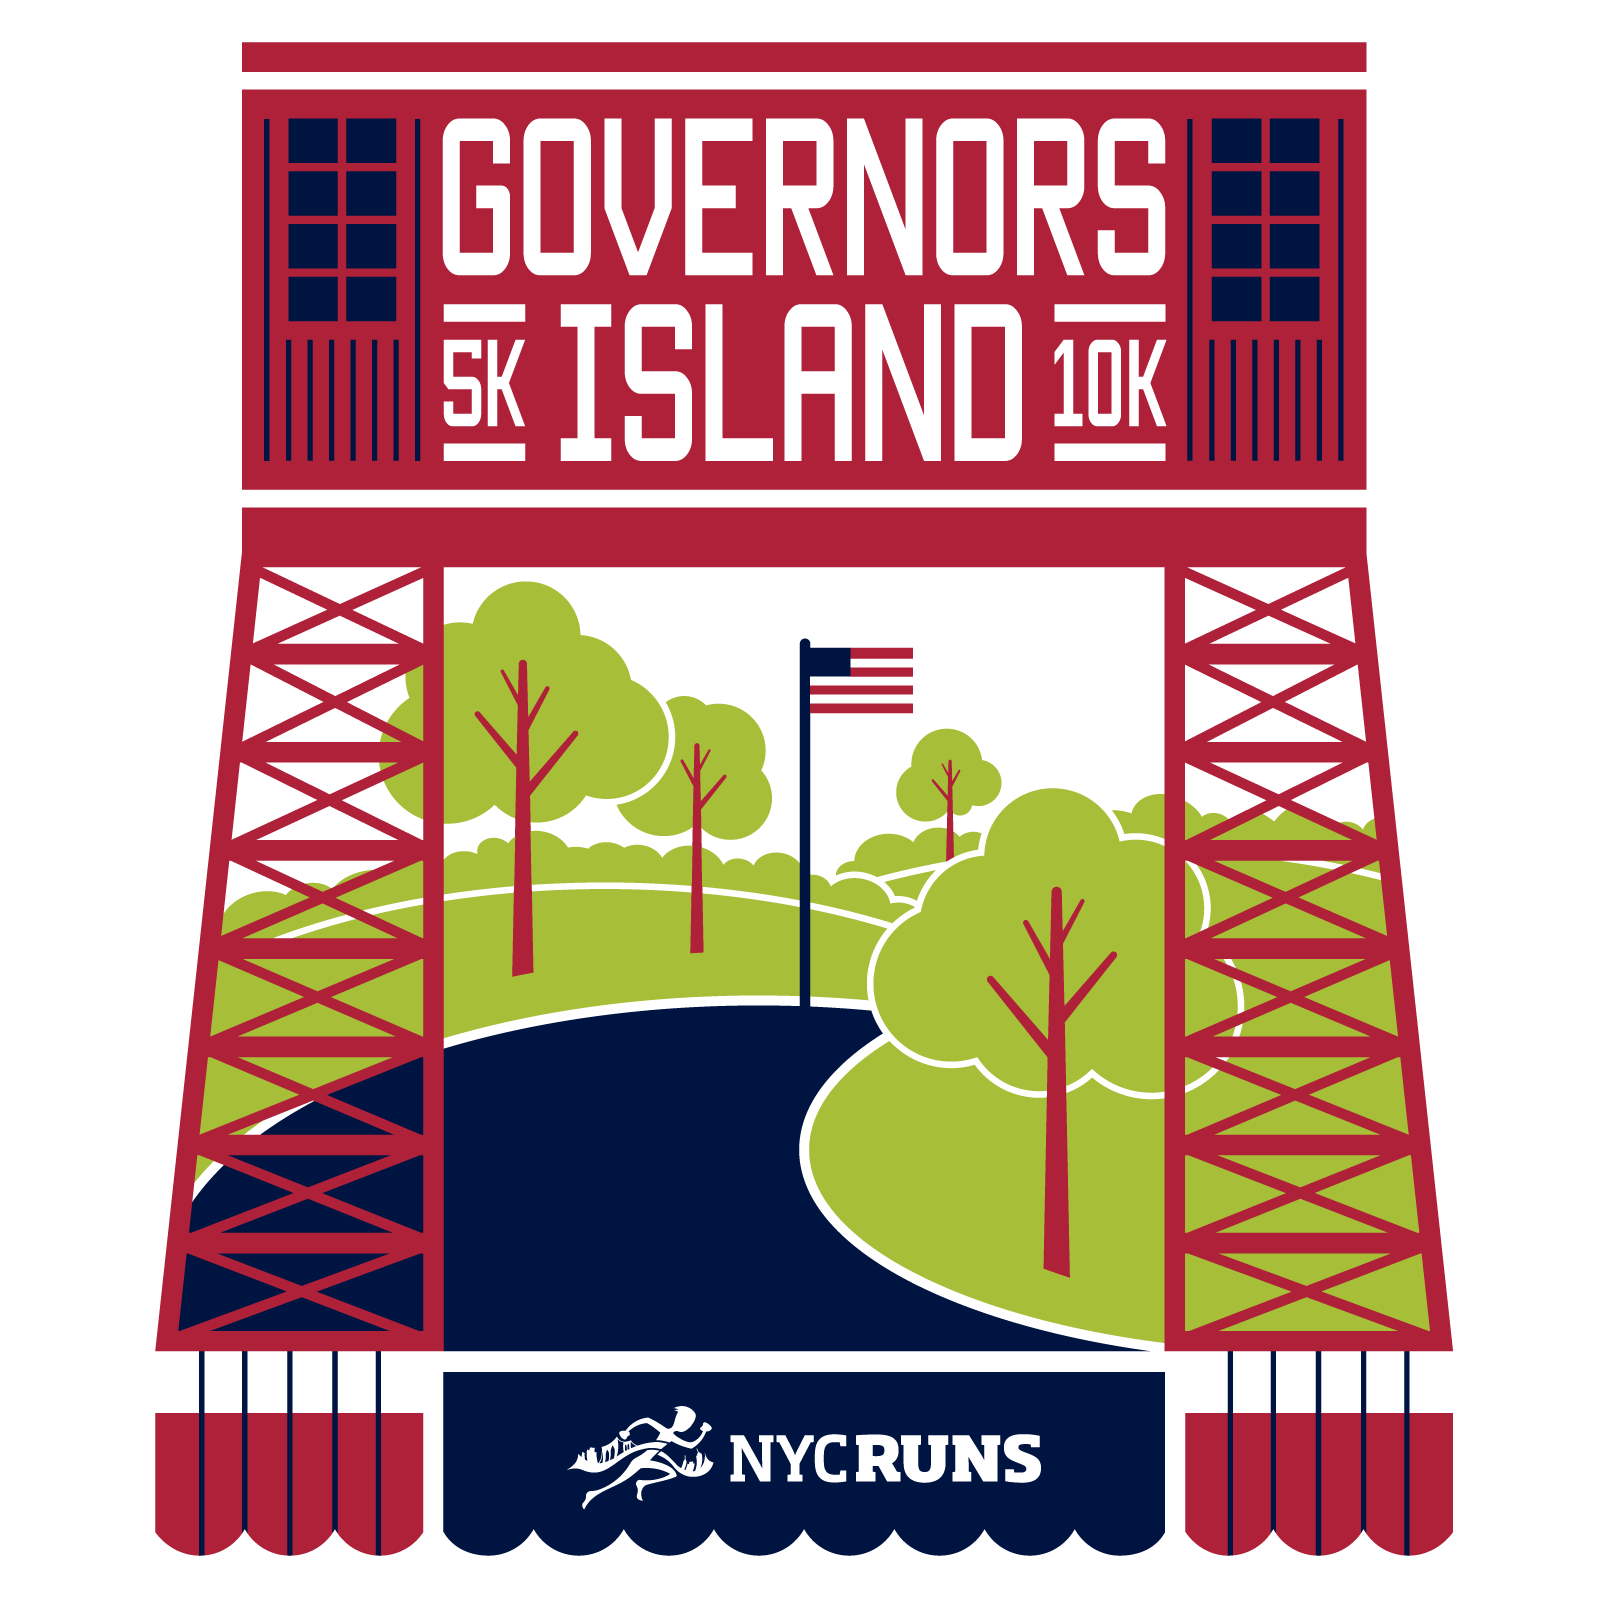 NYCRUNS Governors Island K  K New York NY  ACTIVE - Map us governors